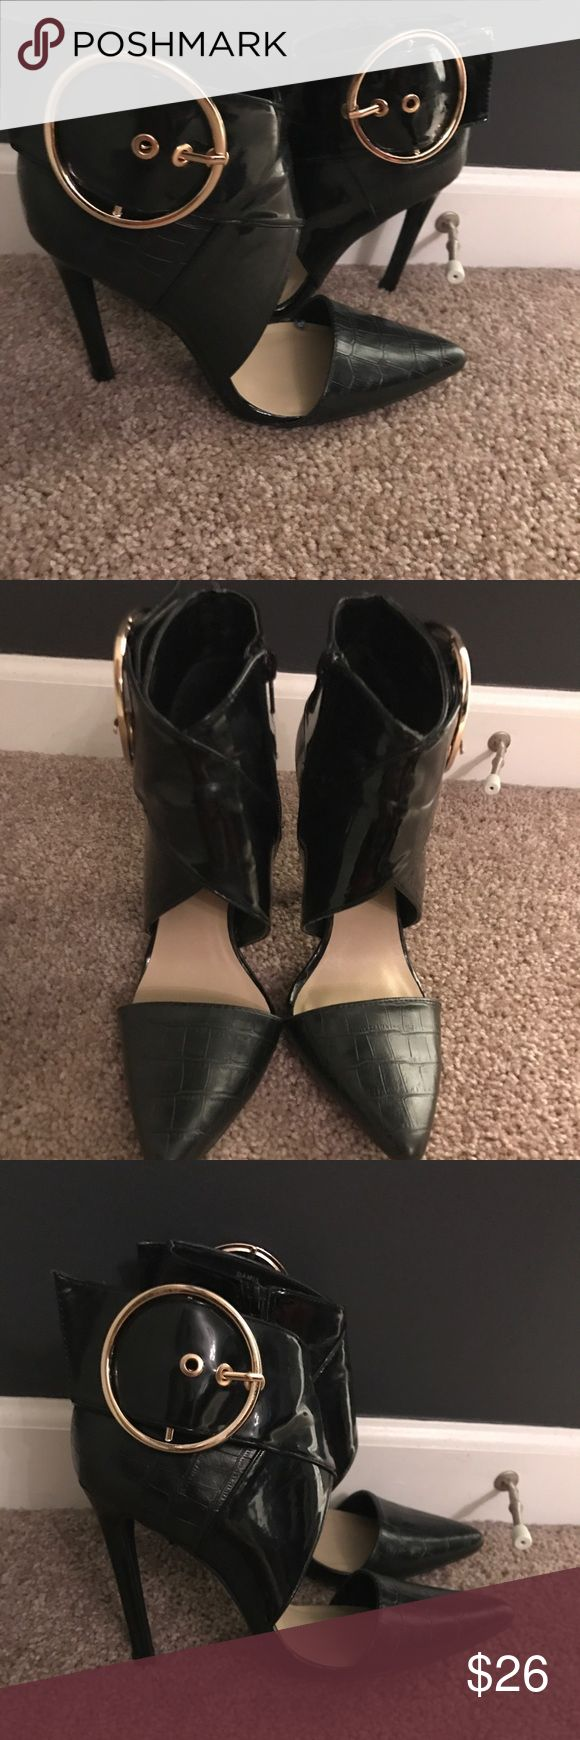 Black shoe dazzle heels W/darling gold buckle 6.5 Gorgeous black heels in great condition , these are from shoe dazzle and only have been worn once . They show no signs of wear on the outside of shoe. They have a great design and are very sexy. Can be dressed up or down. Size 6.5 Shoe Dazzle Shoes Heels